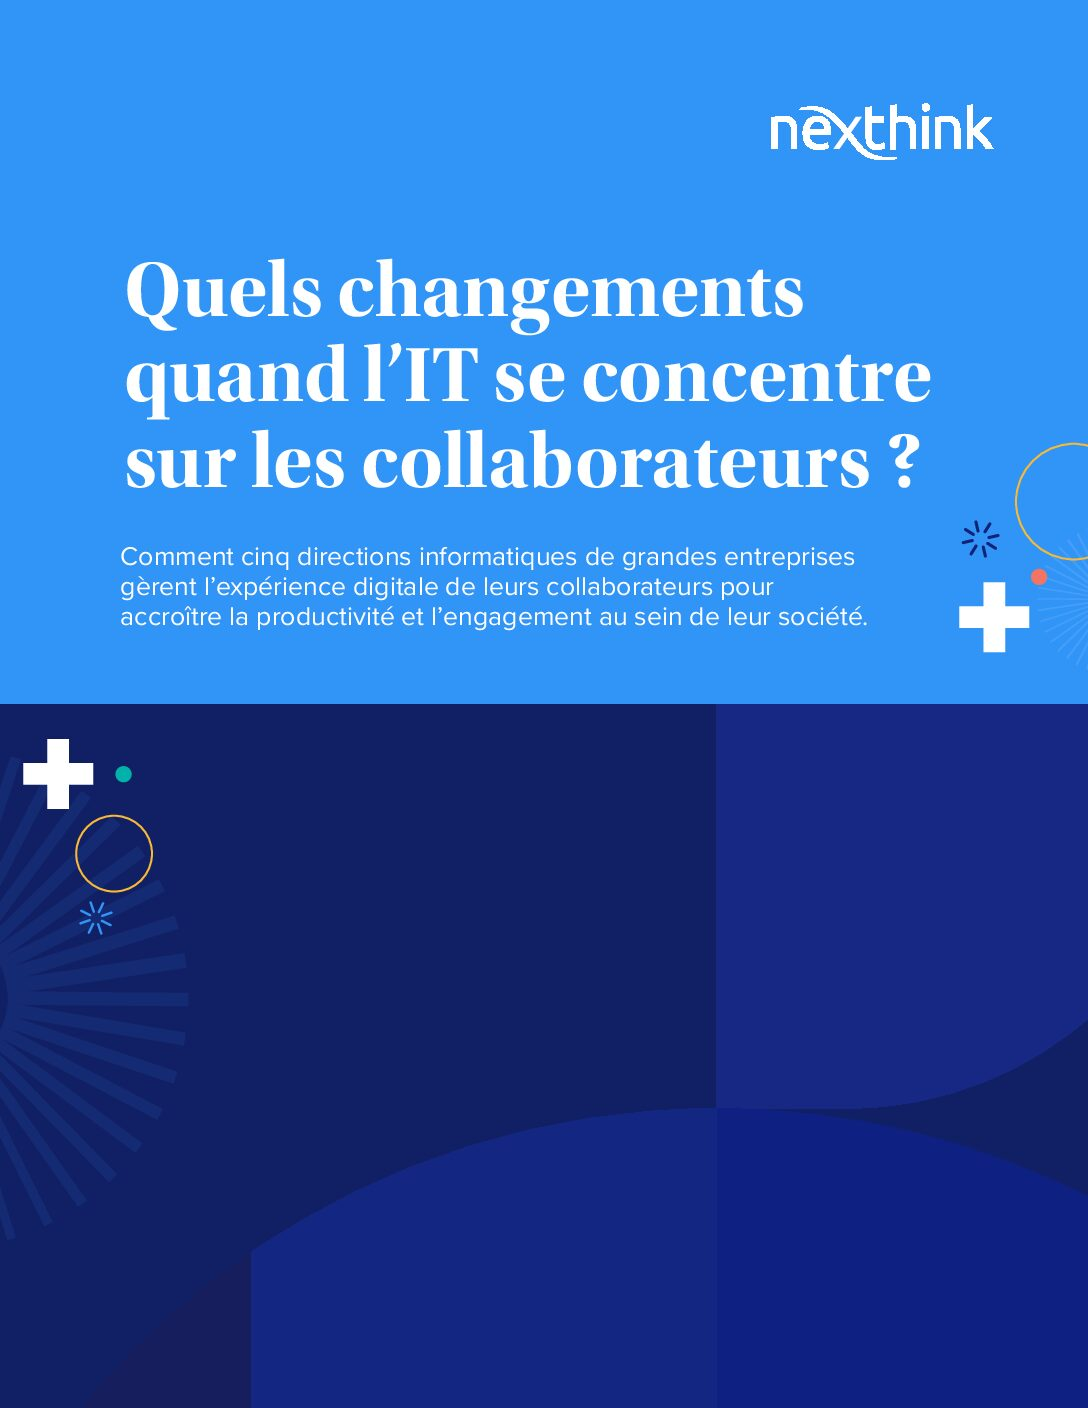 Quels changements quand l'IT se concentre sur les collaborateurs ?